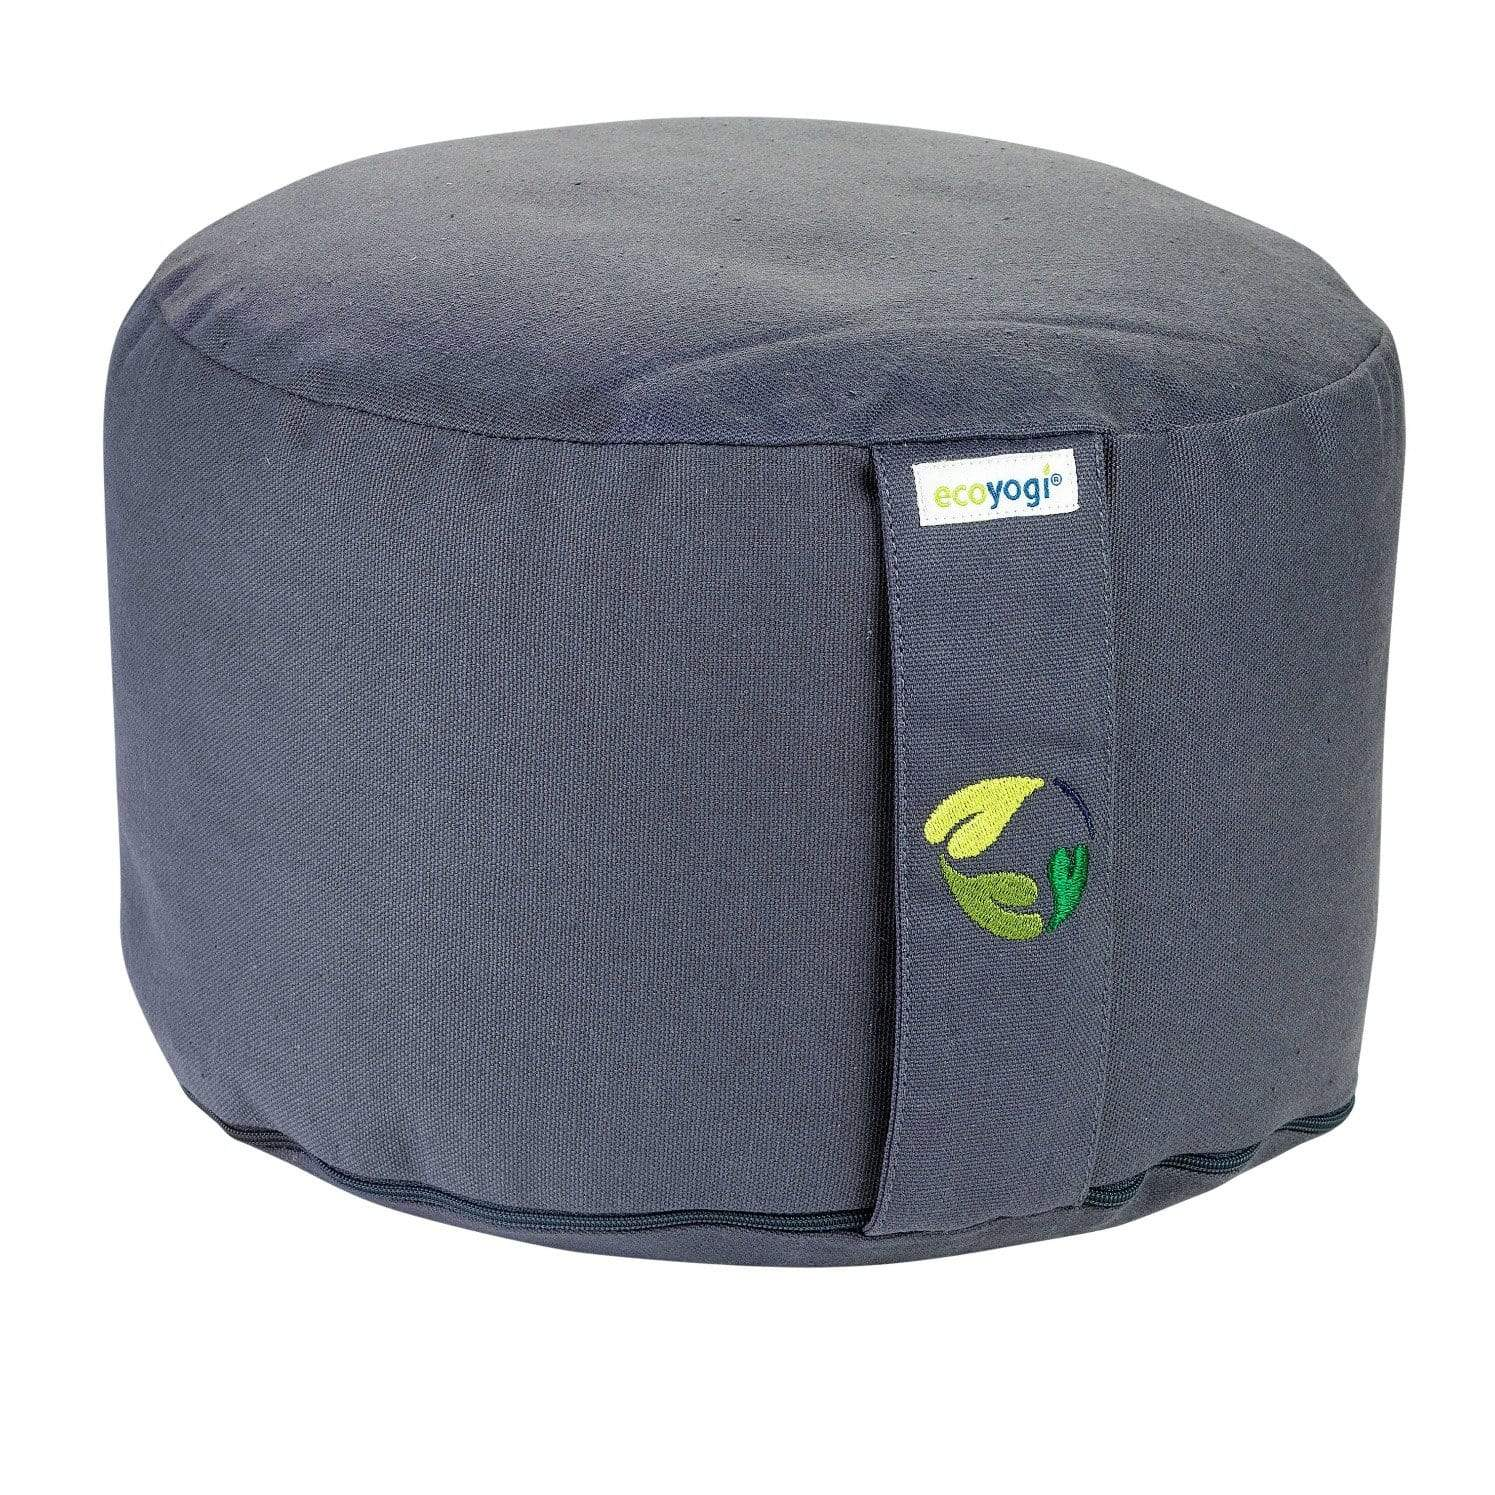 Sustainable meditation cushion in grey made of organic cotton (GOTS certified) and filling in natural purified buckwheat chaff